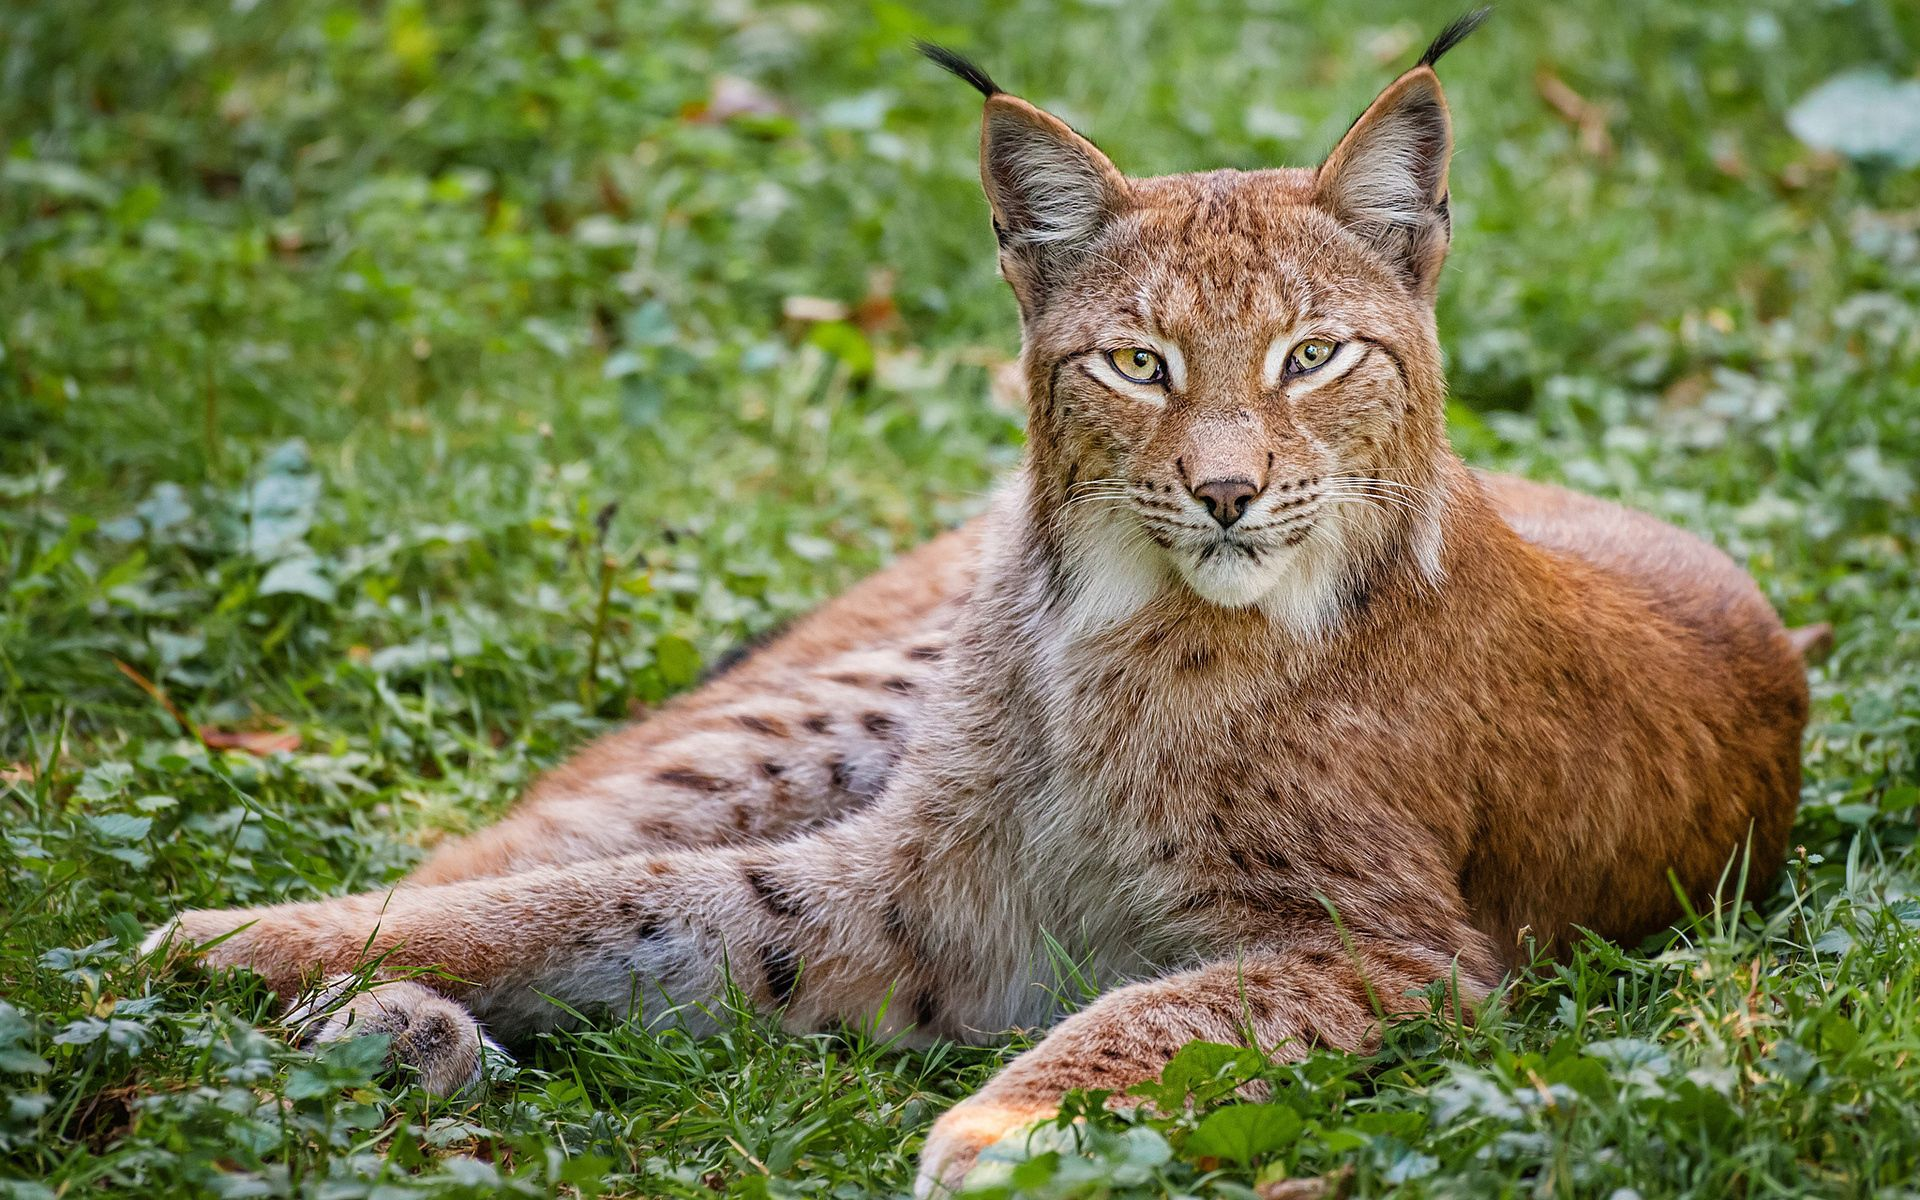 151854 download wallpaper Animals, Iris, Grass, Big Cat, Predator, To Lie Down, Lie screensavers and pictures for free